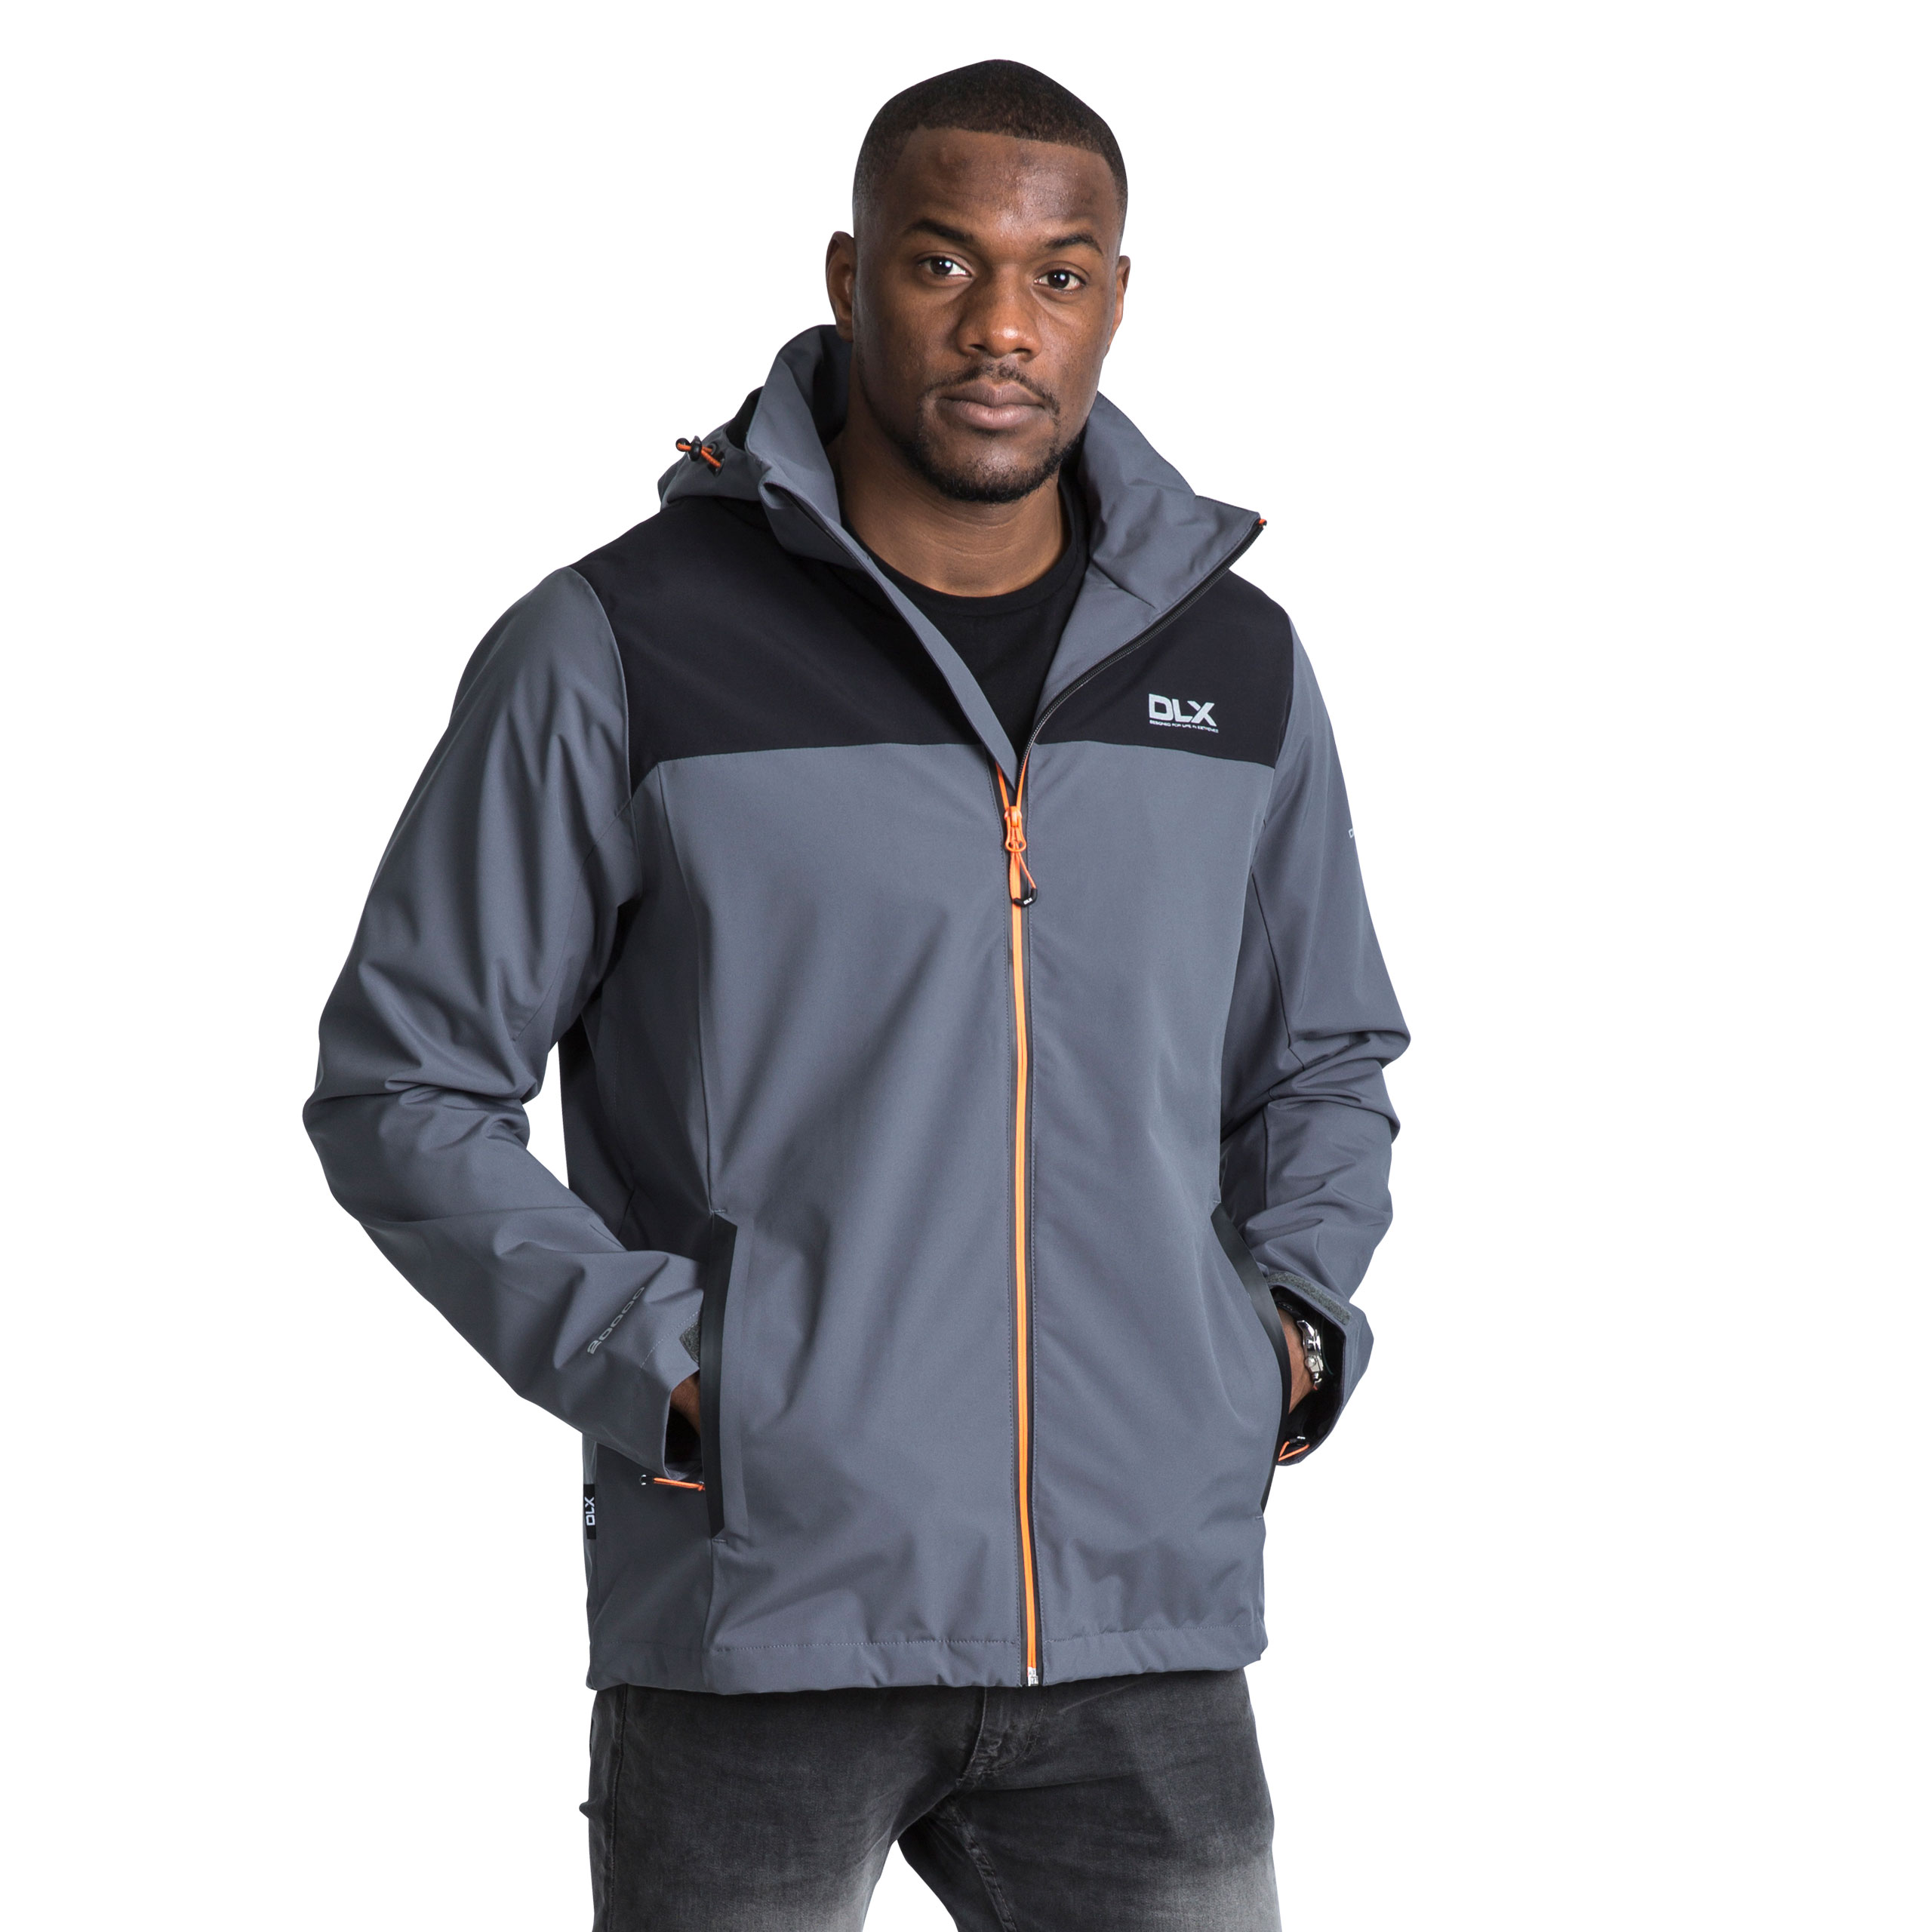 DLX-Ginsberg-DLX-Mens-Waterproof-Jacket-Hooded-Coat-in-Blue-and-Grey thumbnail 16